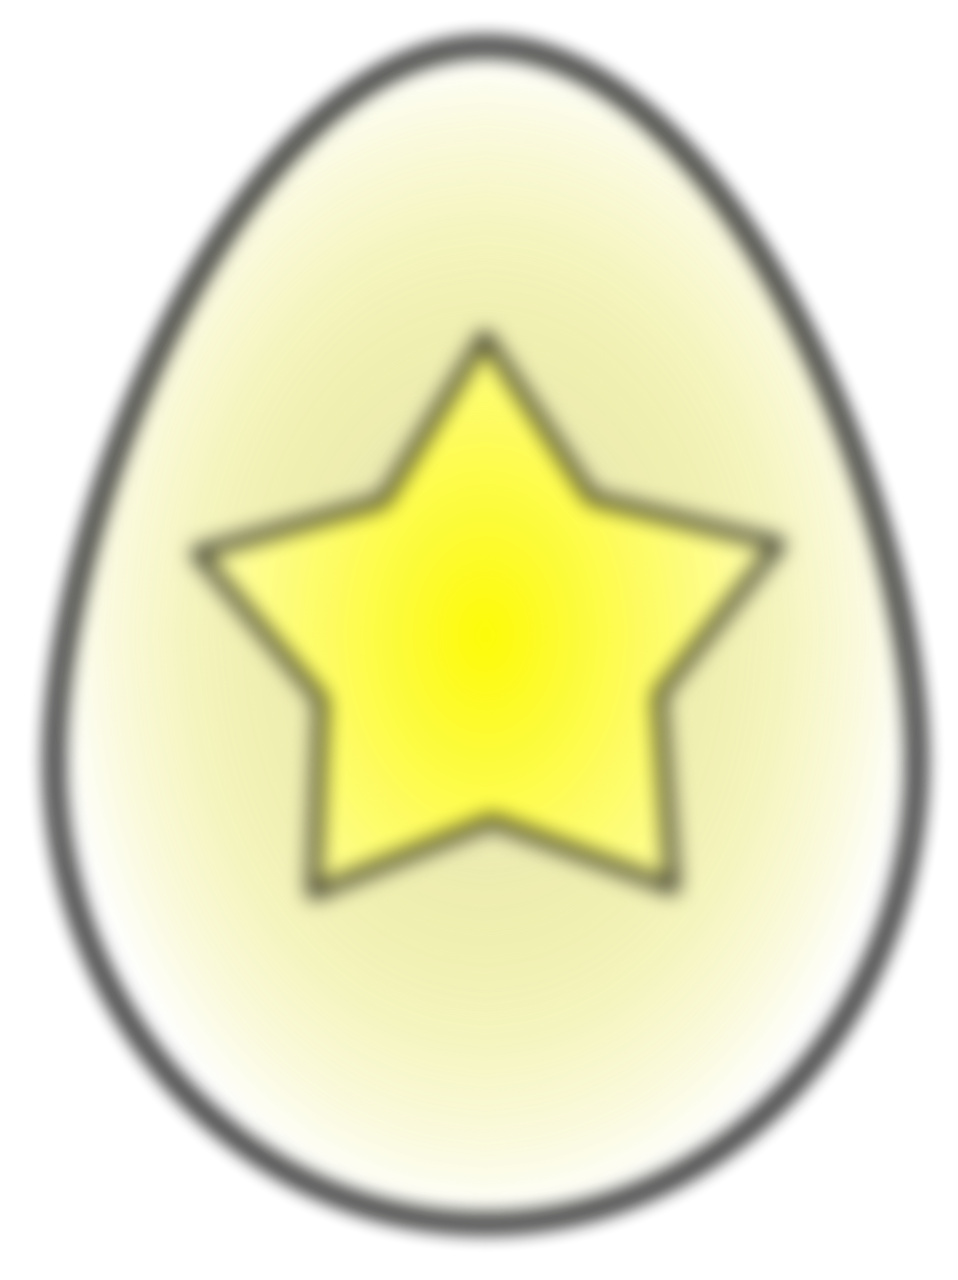 Illustration of an Easter egg painted with a yellow star with a transparent background.